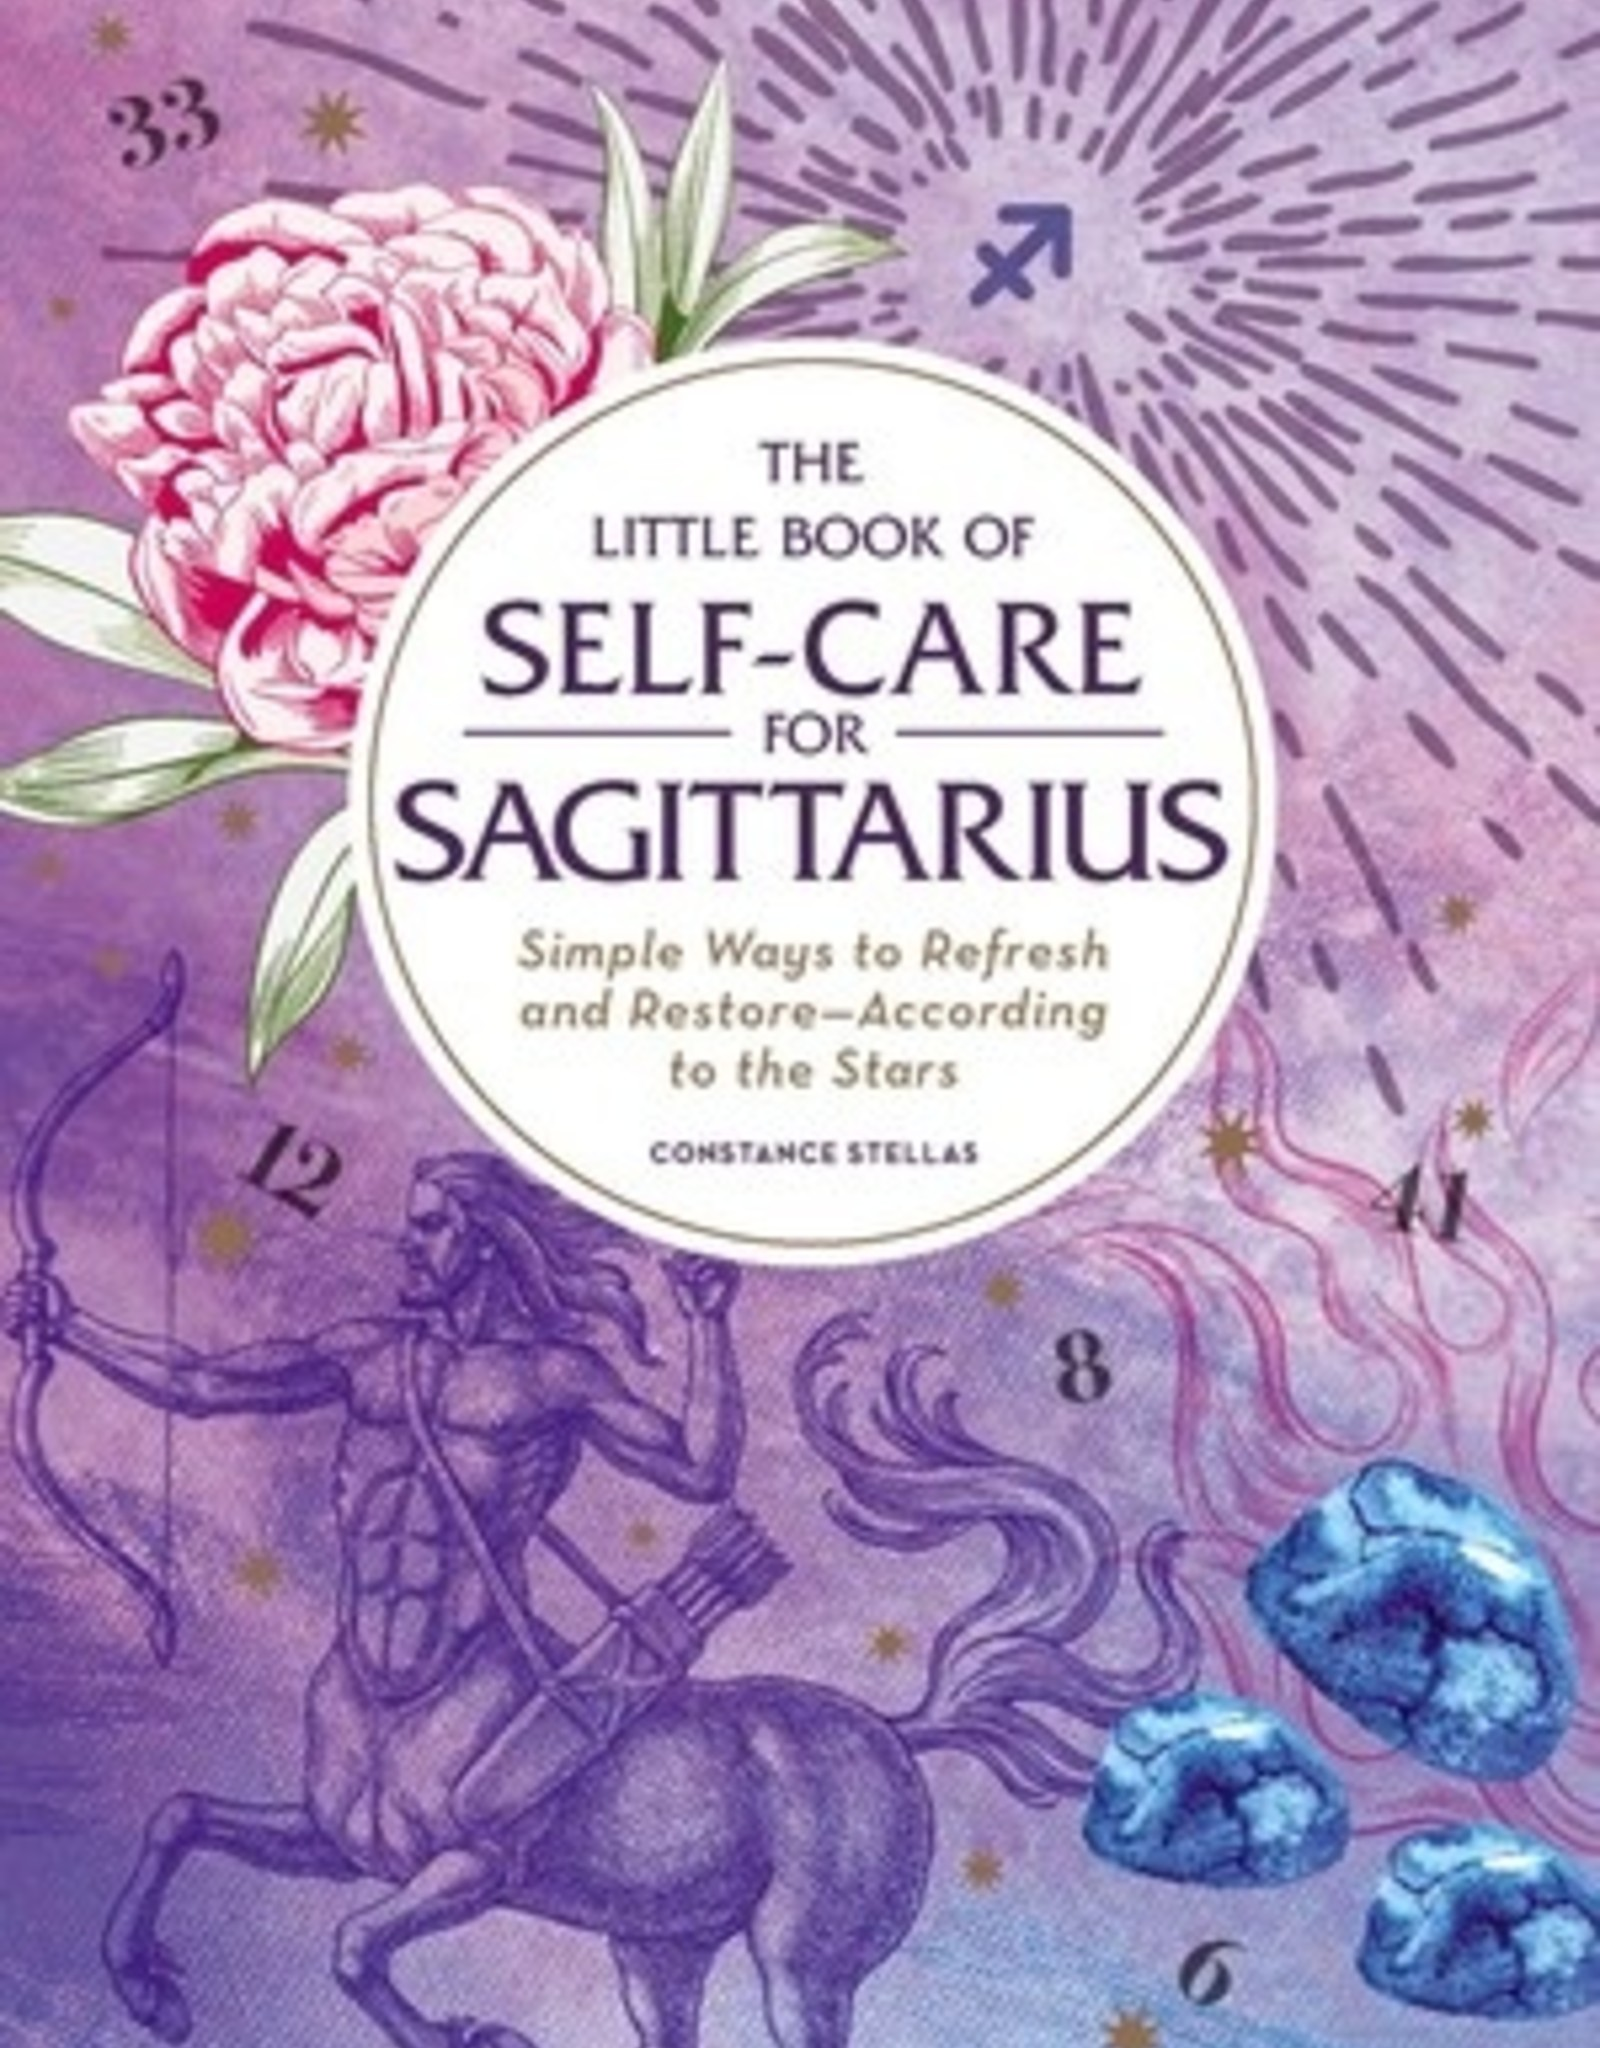 Simon & Schuster The Little Book of Self-Care for Sagittarius